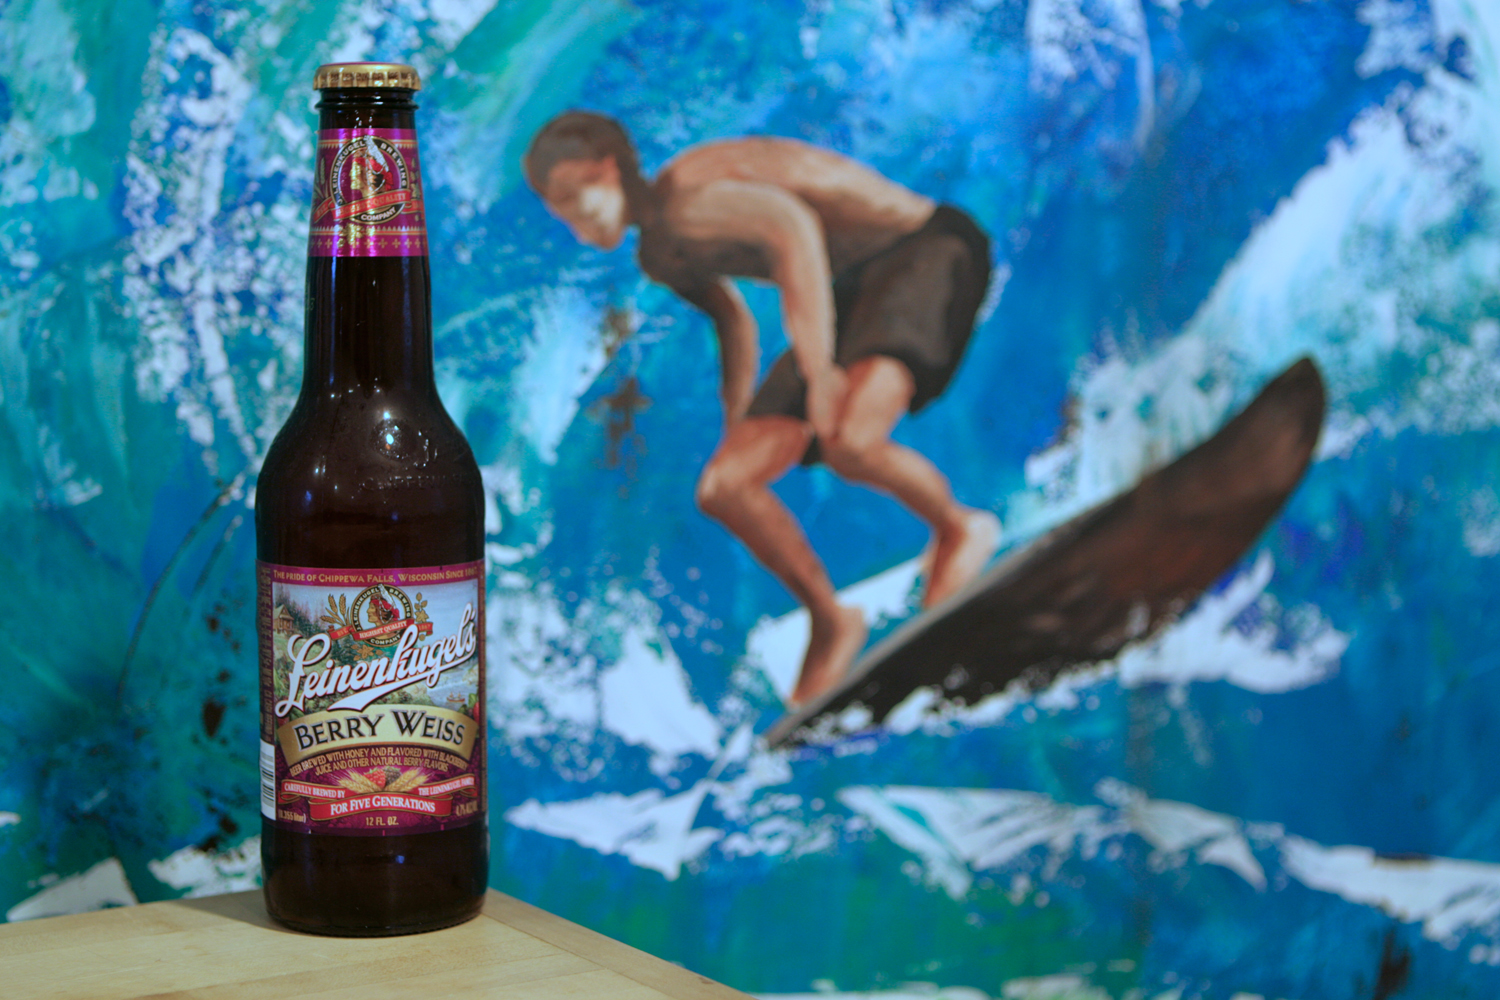 Enjoy this summer berry beer this season.